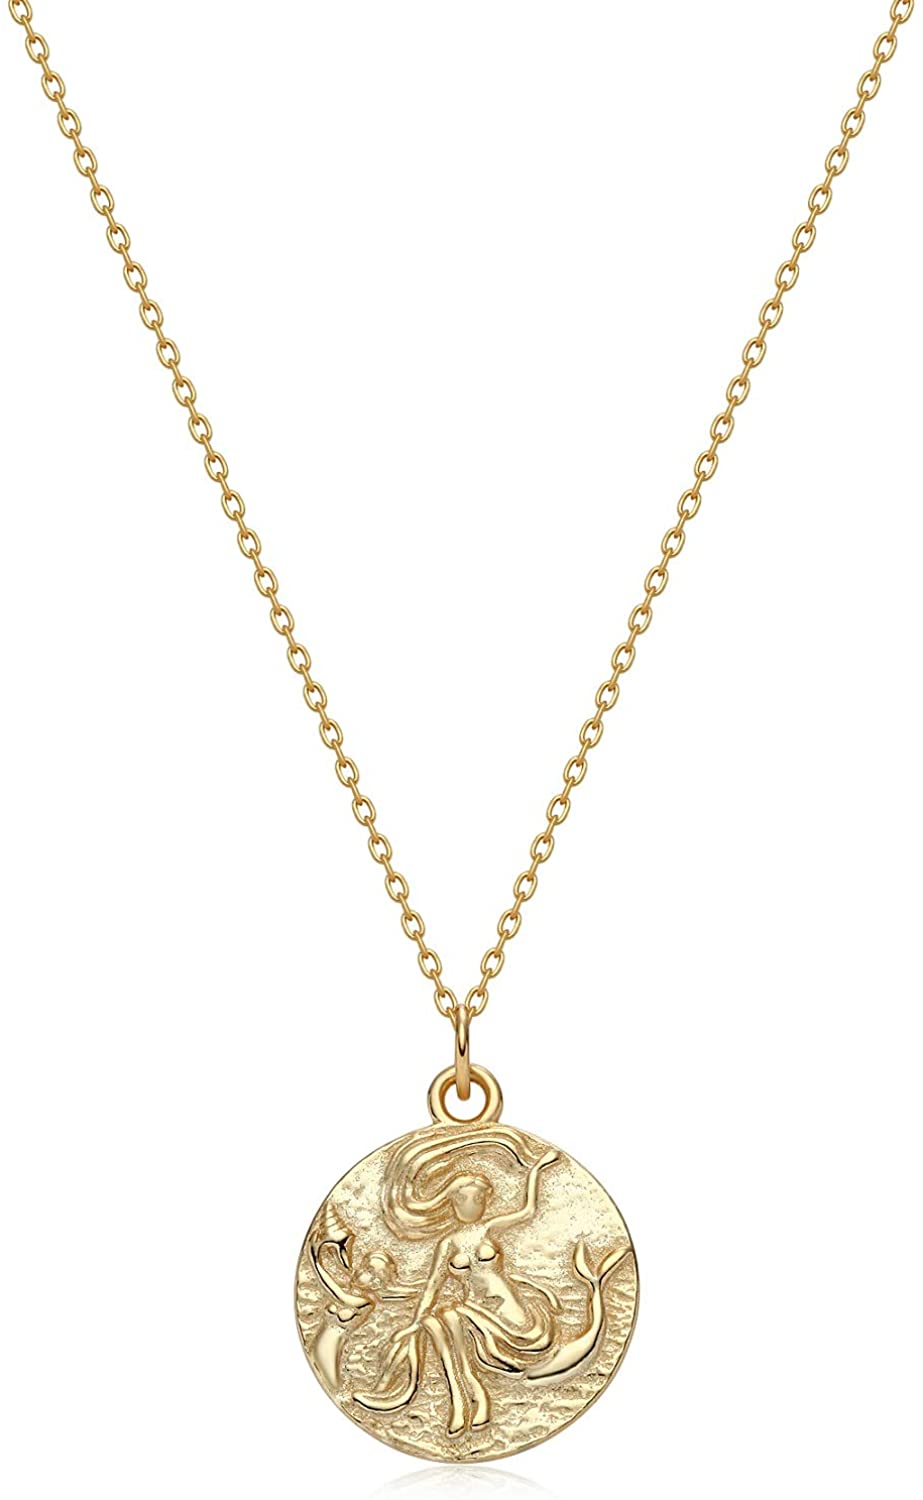 BENEIGE Coin Necklaces for Woman 14K Gold Retro Flower Animal Portrait Relief Charm Medallion Circle Disc Pendant Gold Jewelry